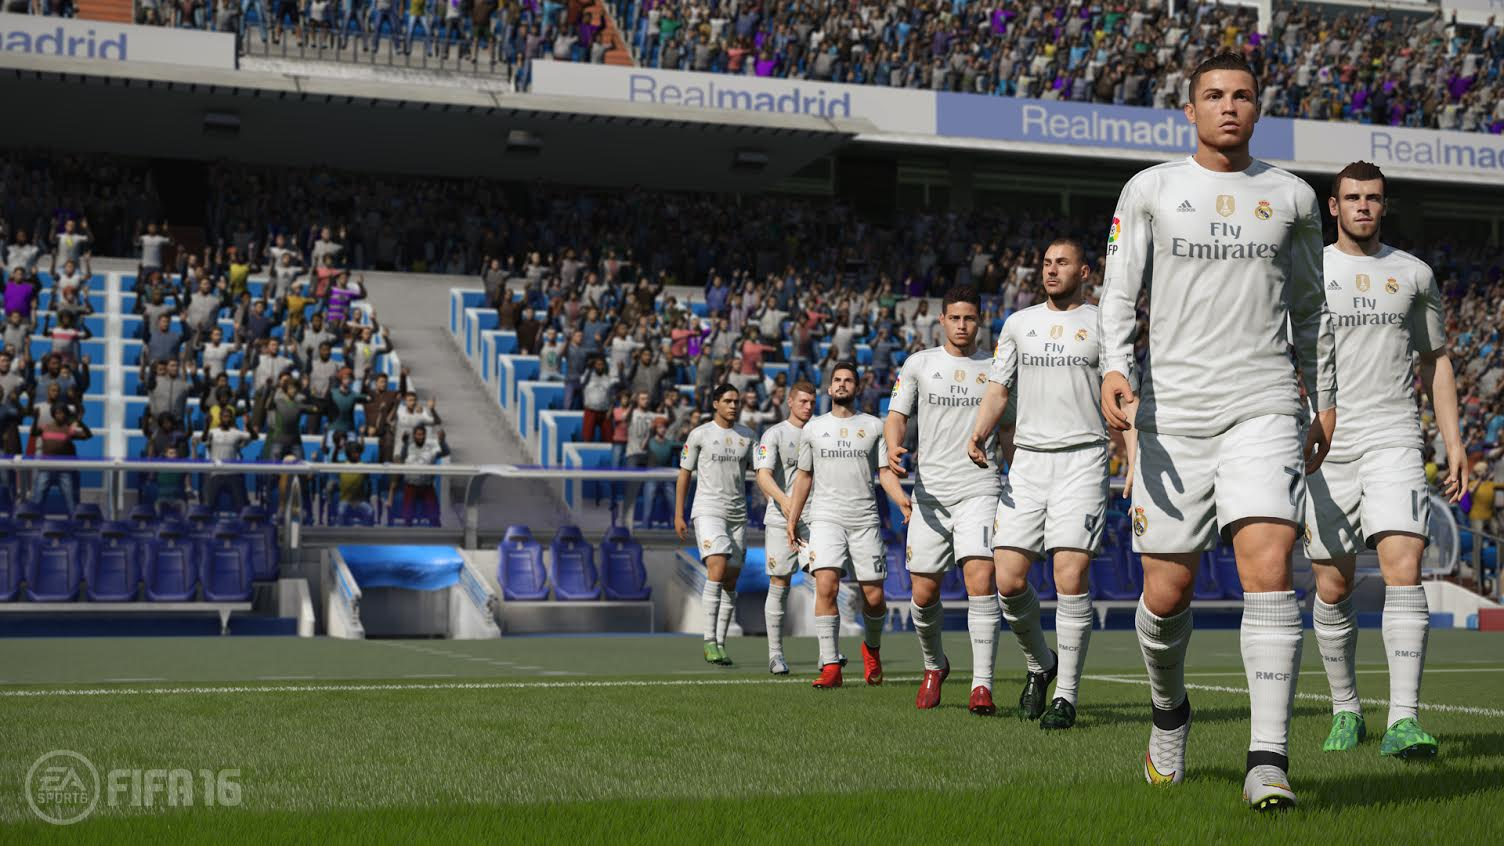 Real-Madrid-Fifa16